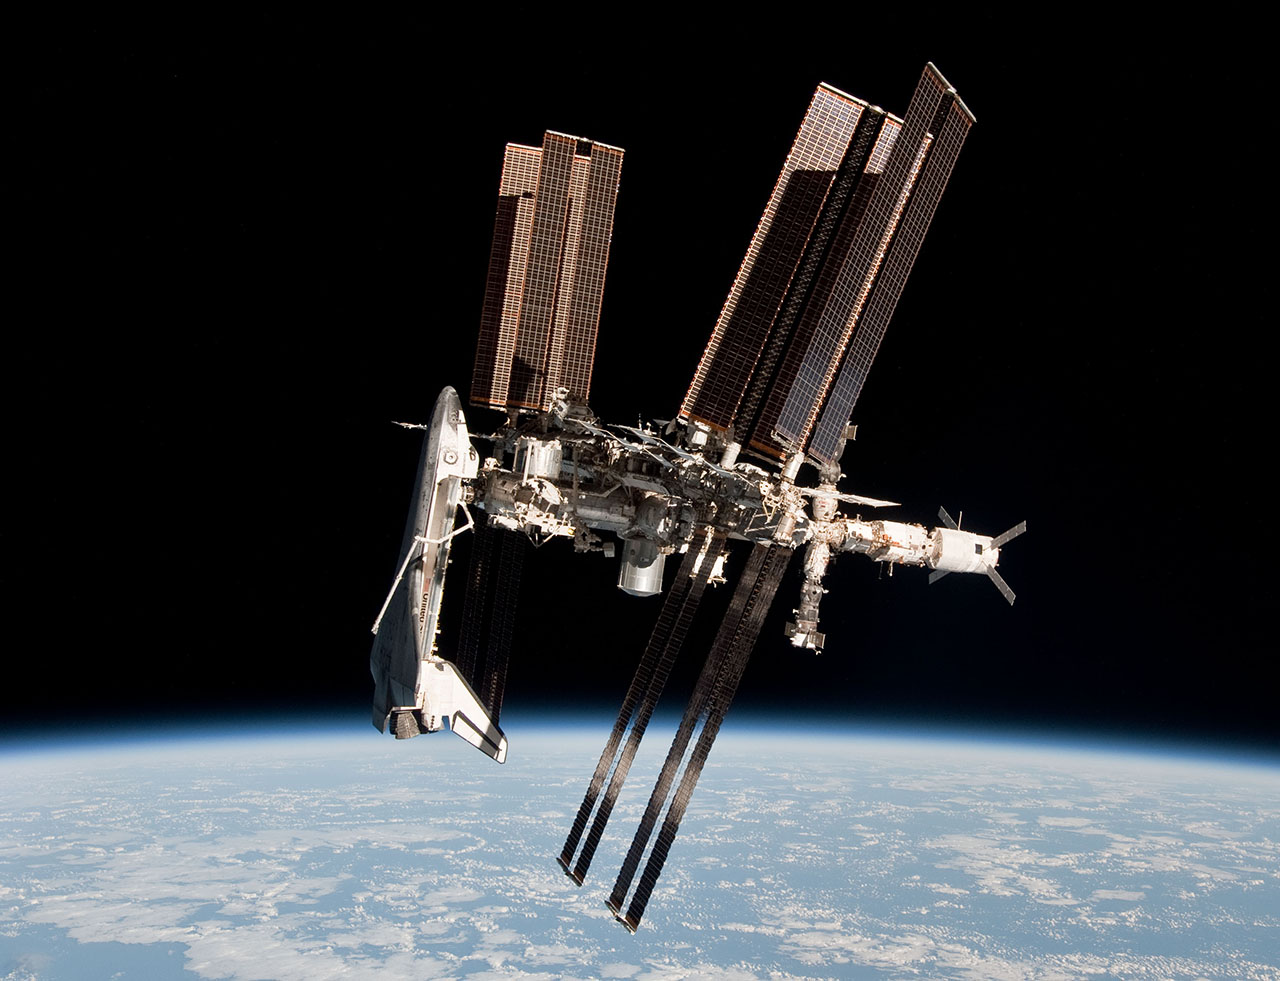 ISS during STS-134